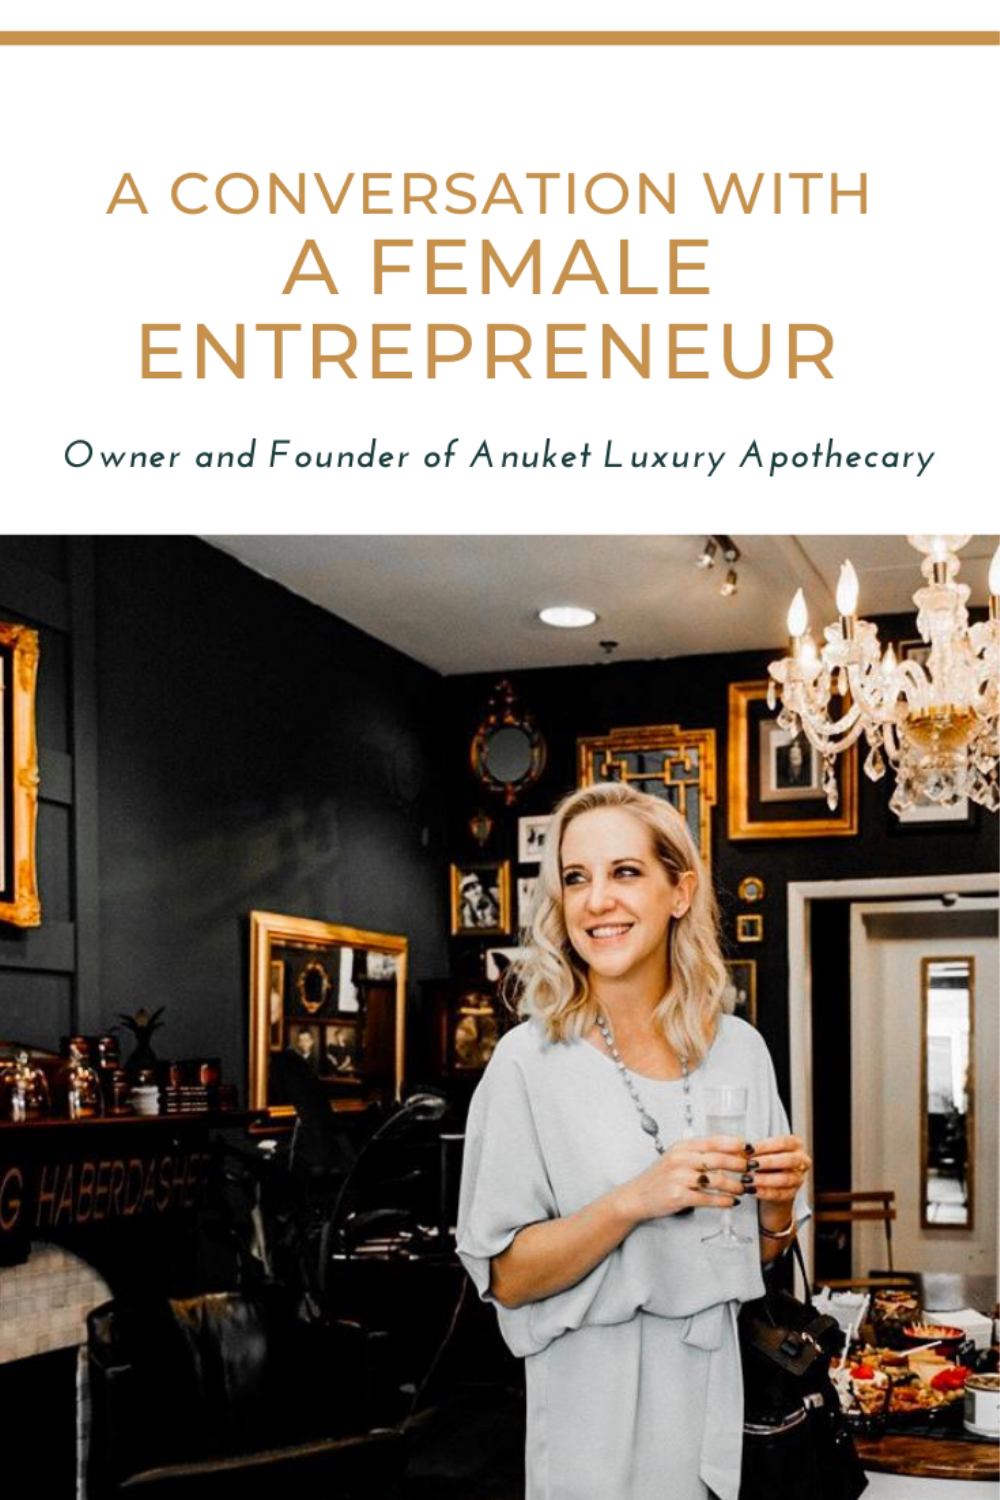 Ashlee Dozier, Founder of Anuket Luxury Apothecary, smiling and holding a glass of champagne. A Pinterest graphic depicting an interview with Ashlee Dozier, Owner of Anuket Luxury Oils.